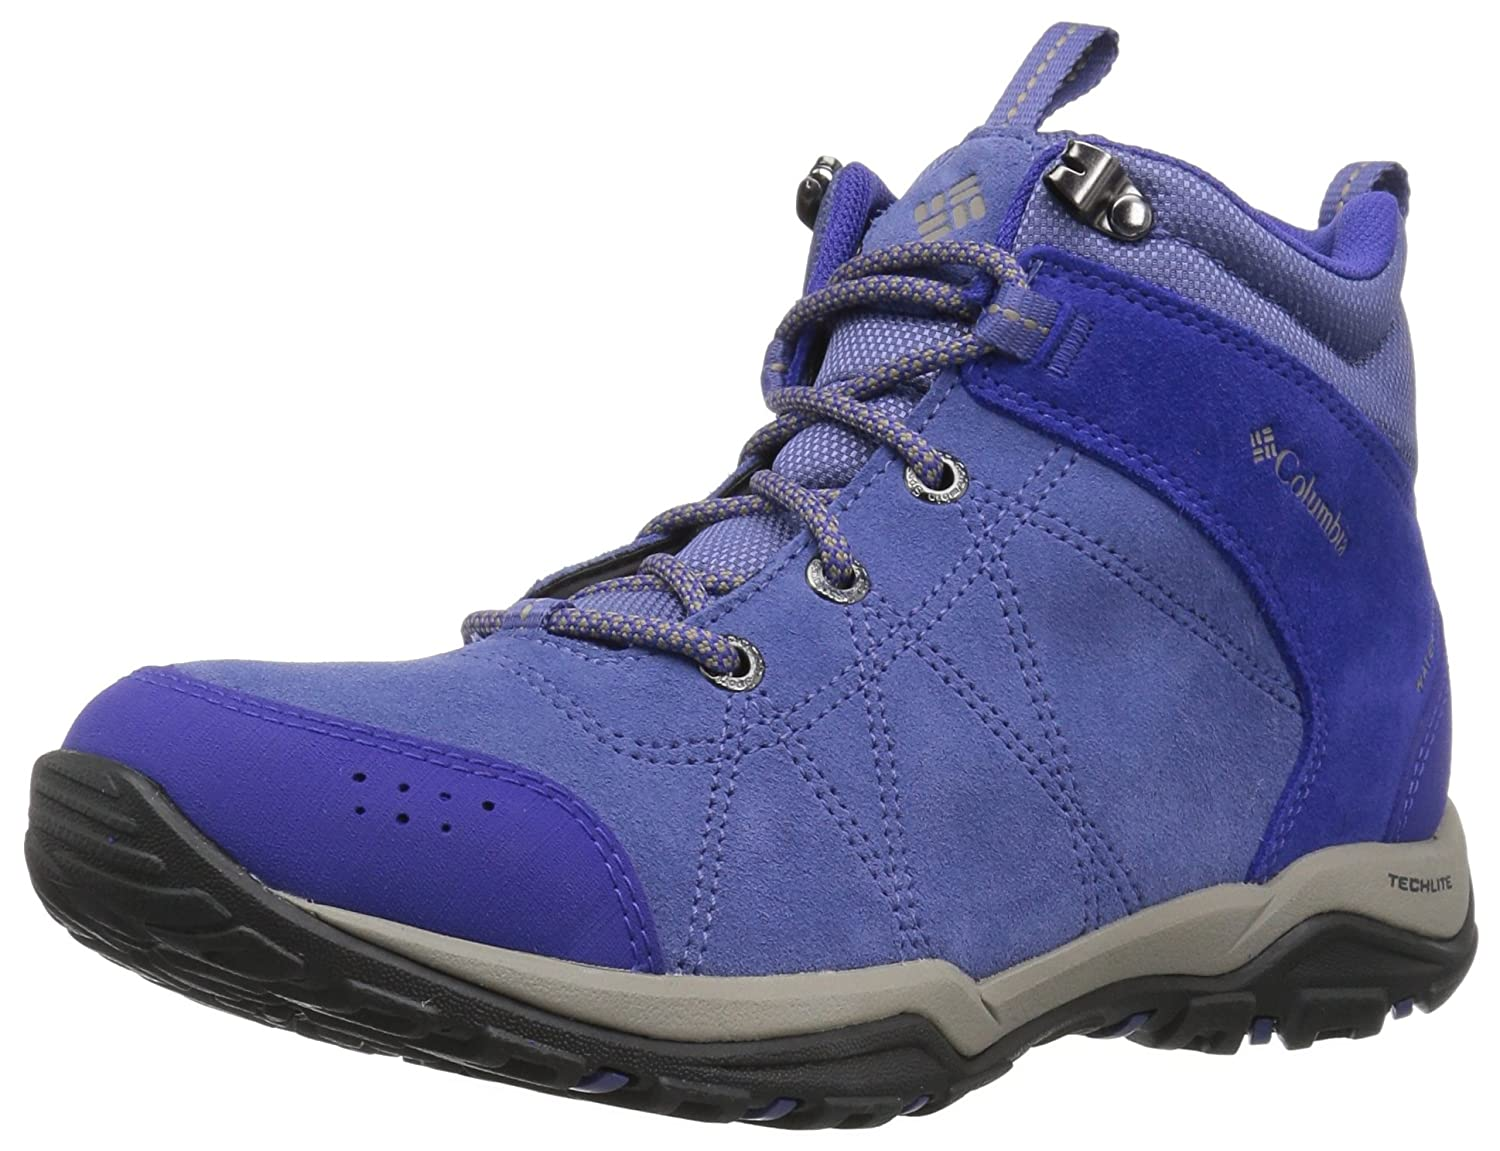 Columbia Women's Fire Venture Mid Suede 5.5 Waterproof Hiking Boot B0787N65Z1 5.5 Suede M US|Eve, Kettle bfb5d5